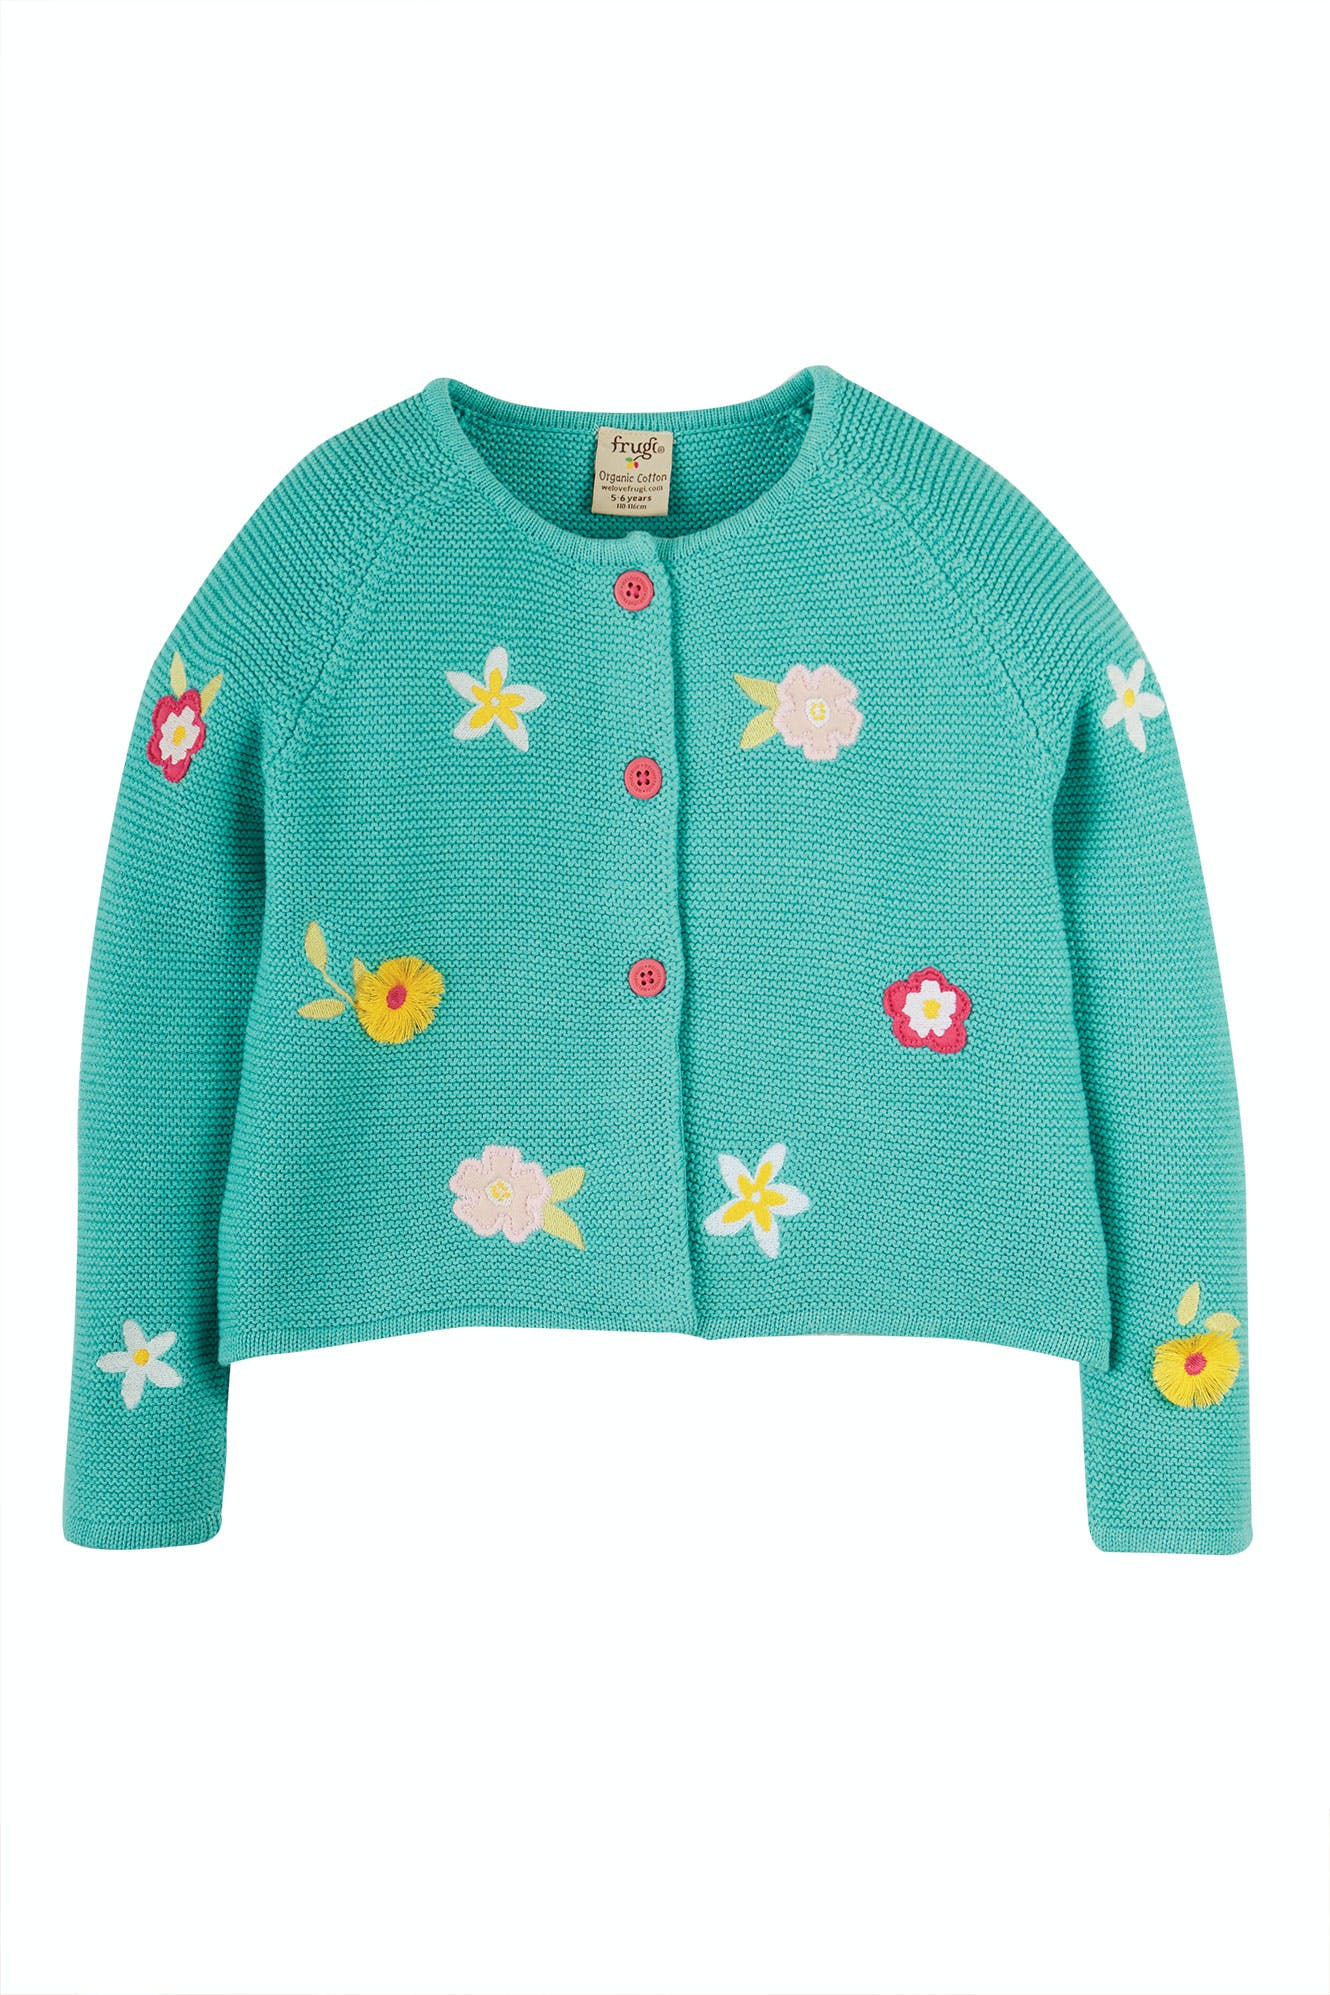 Baby Clothes Emilia Embroidered Cardigan